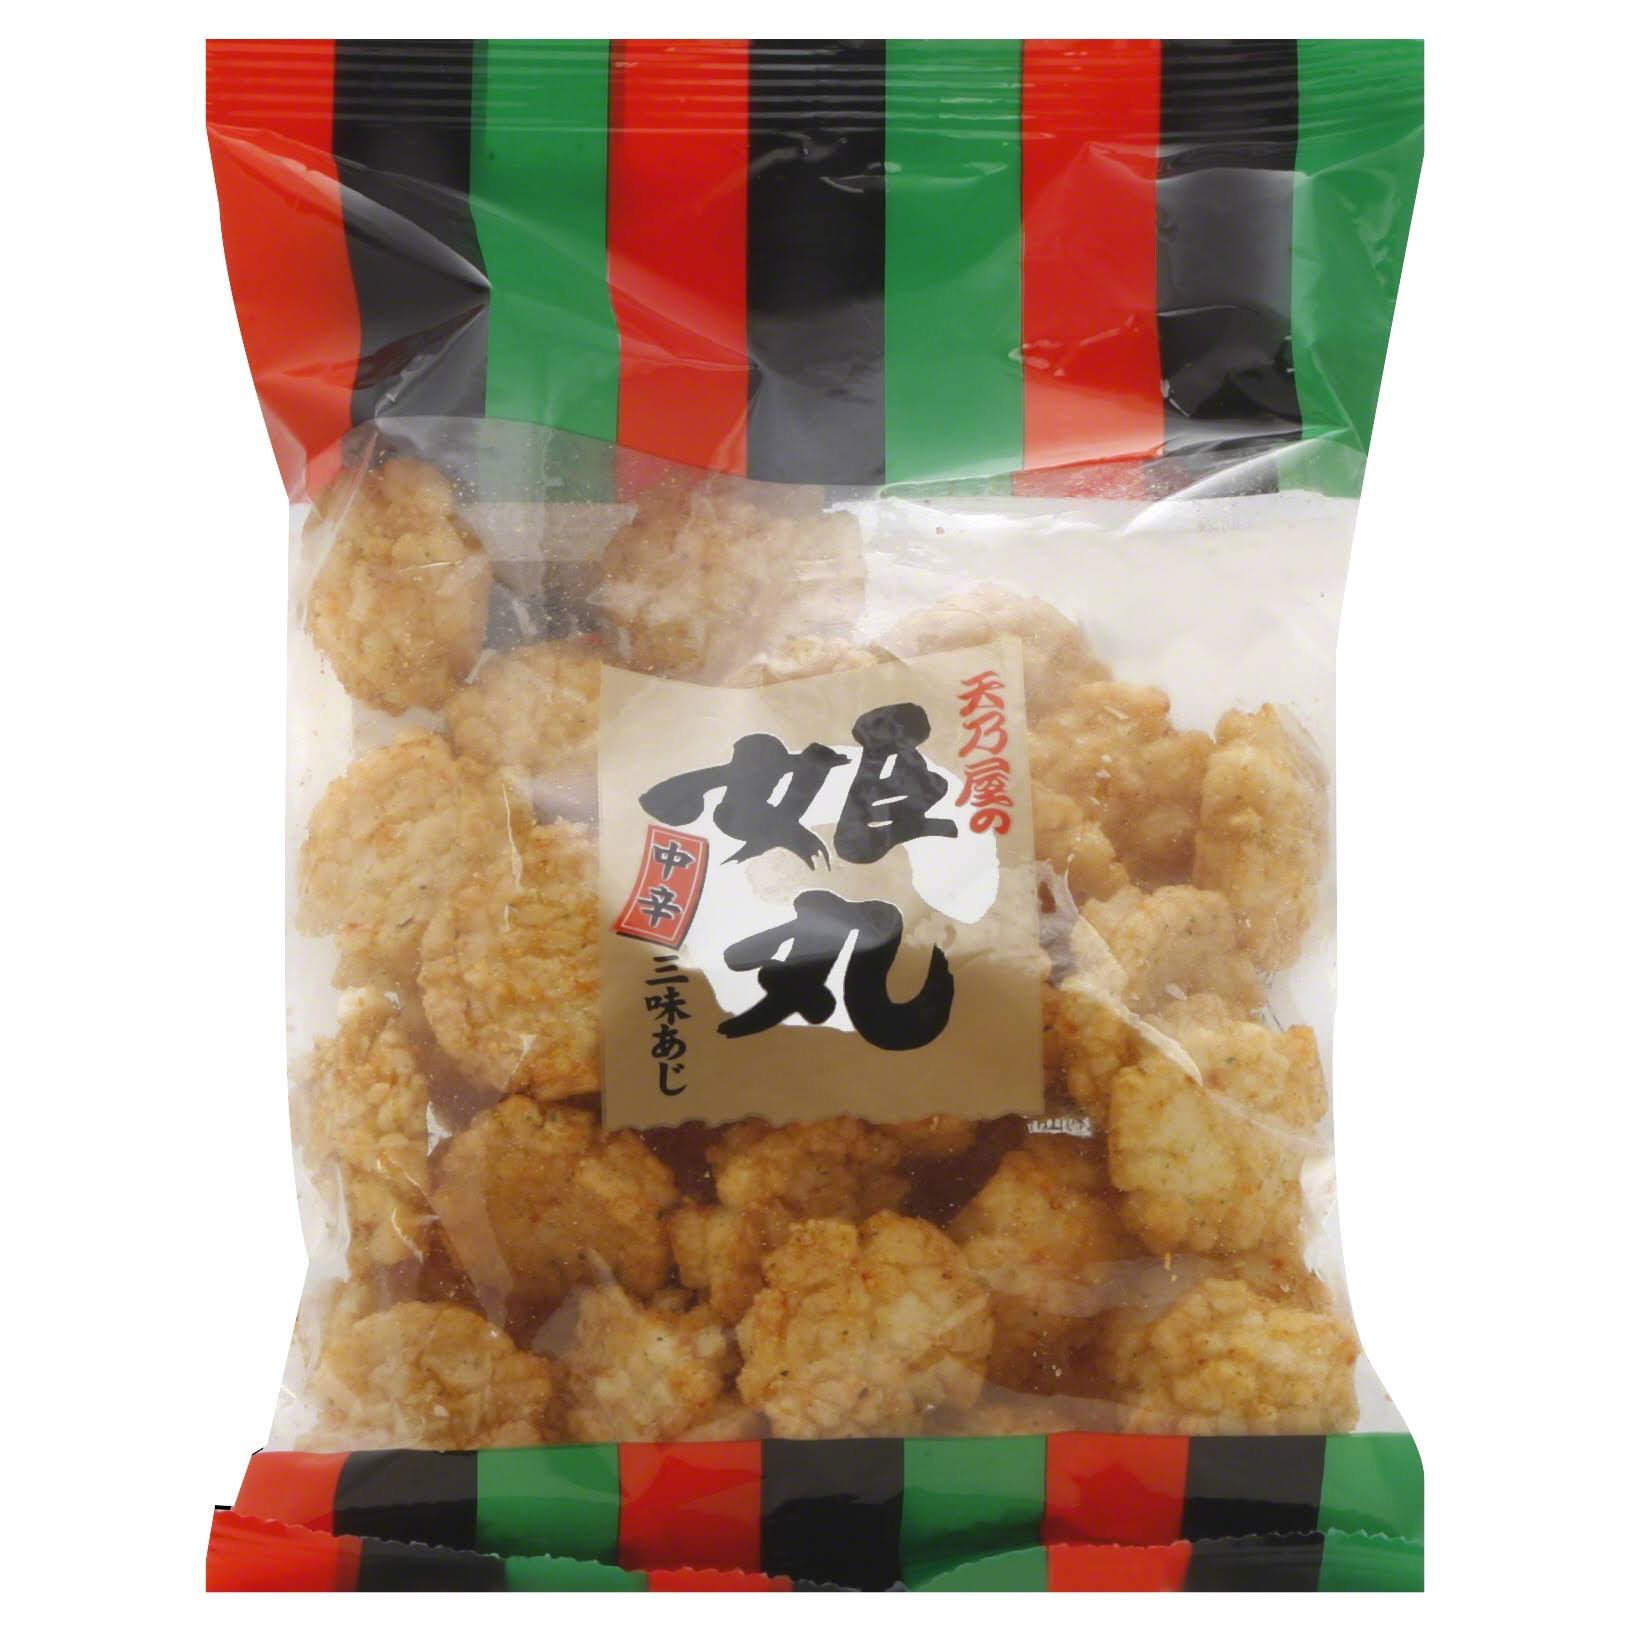 Amanoya Rice Cracker, Japanese - 3.45 oz